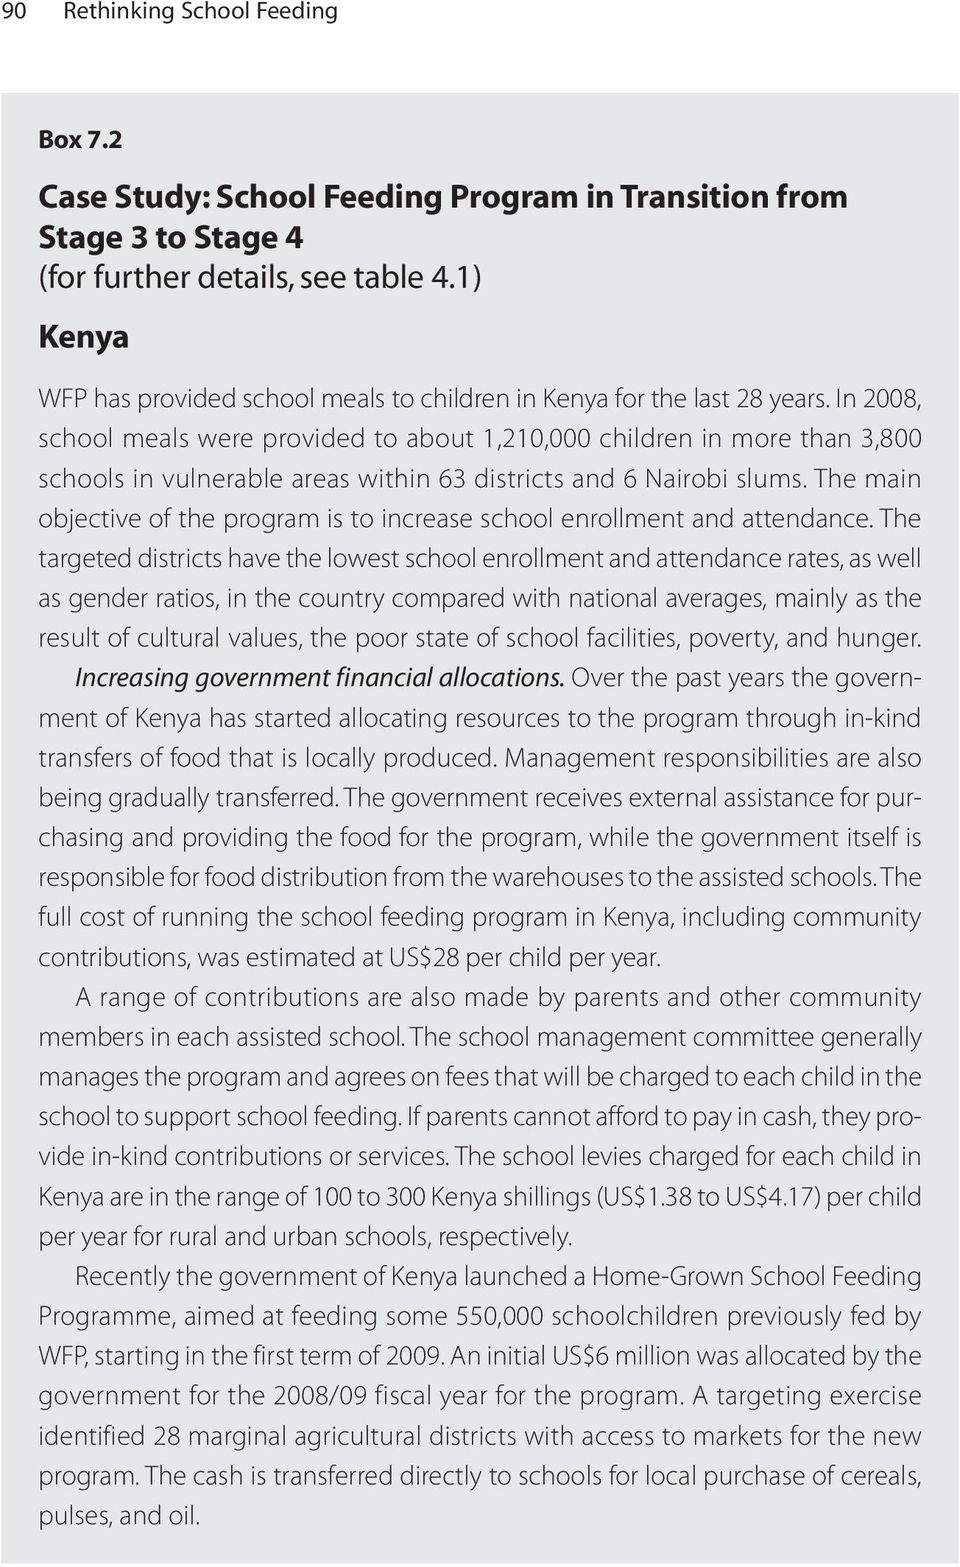 In 2008, school meals were provided to about 1,210,000 children in more than 3,800 schools in vulnerable areas within 63 districts and 6 Nairobi slums.